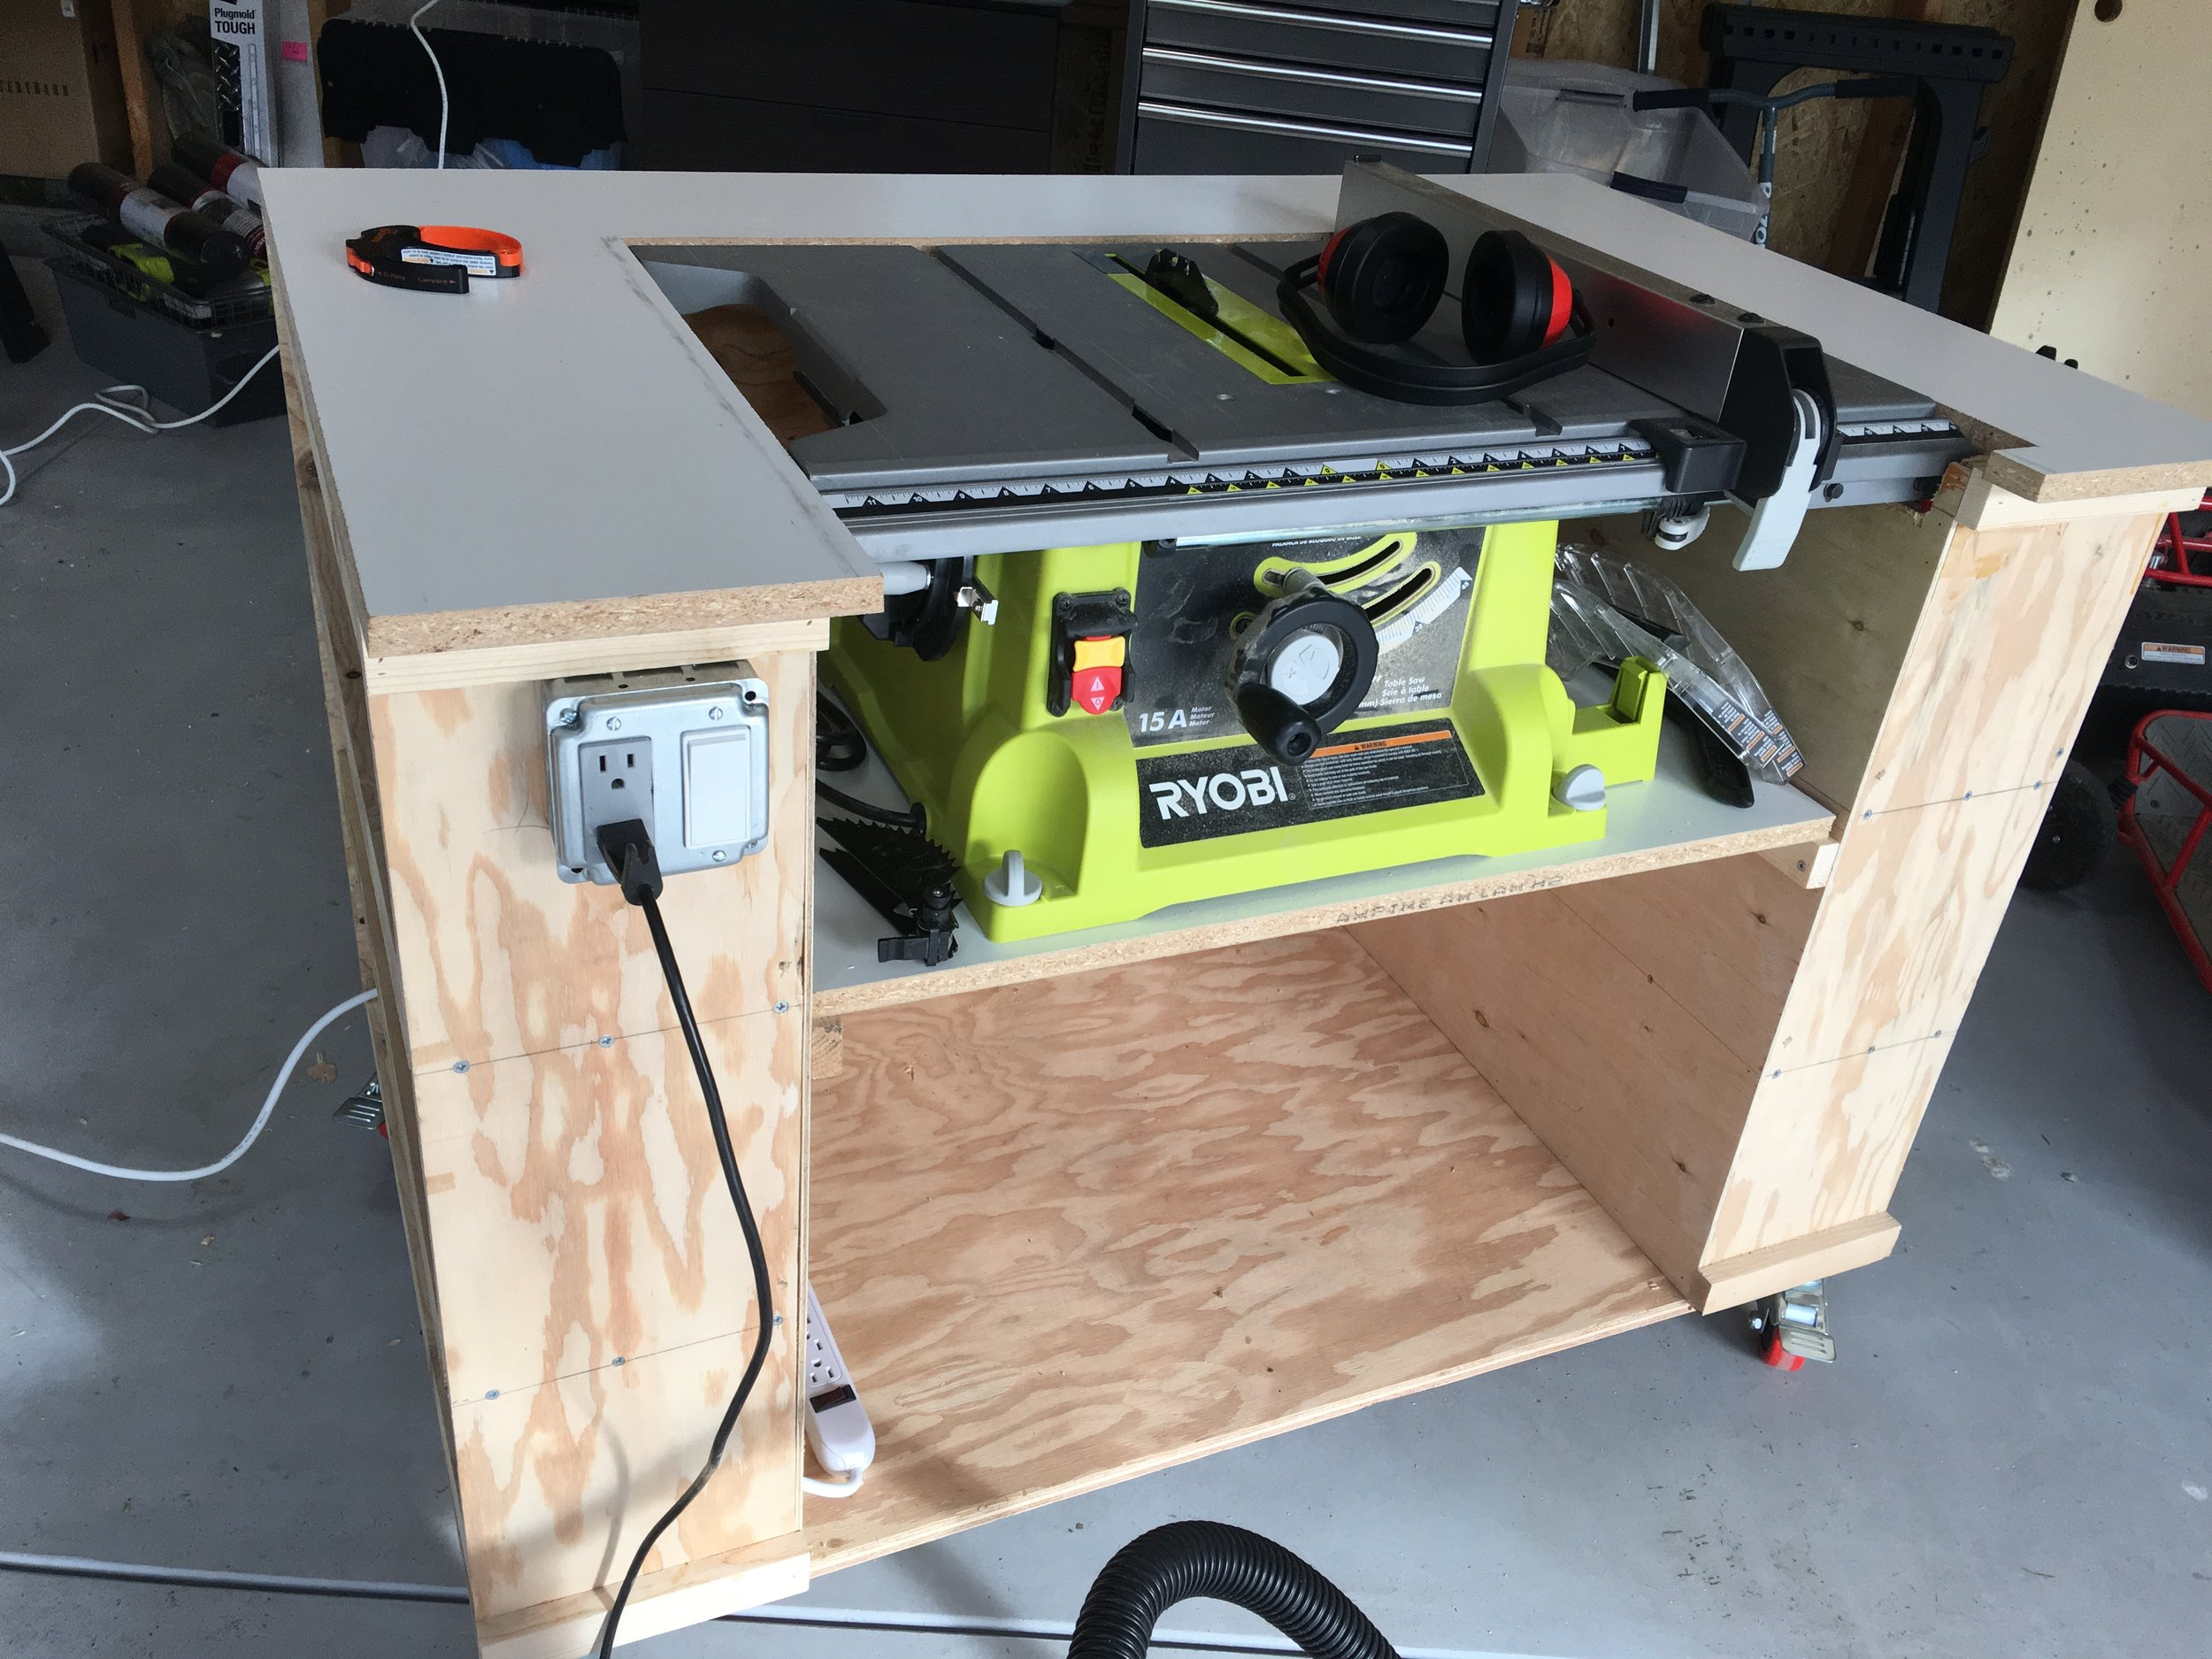 ryobi bts20r table saw wiring diagram ryobi bt3000 table saw router